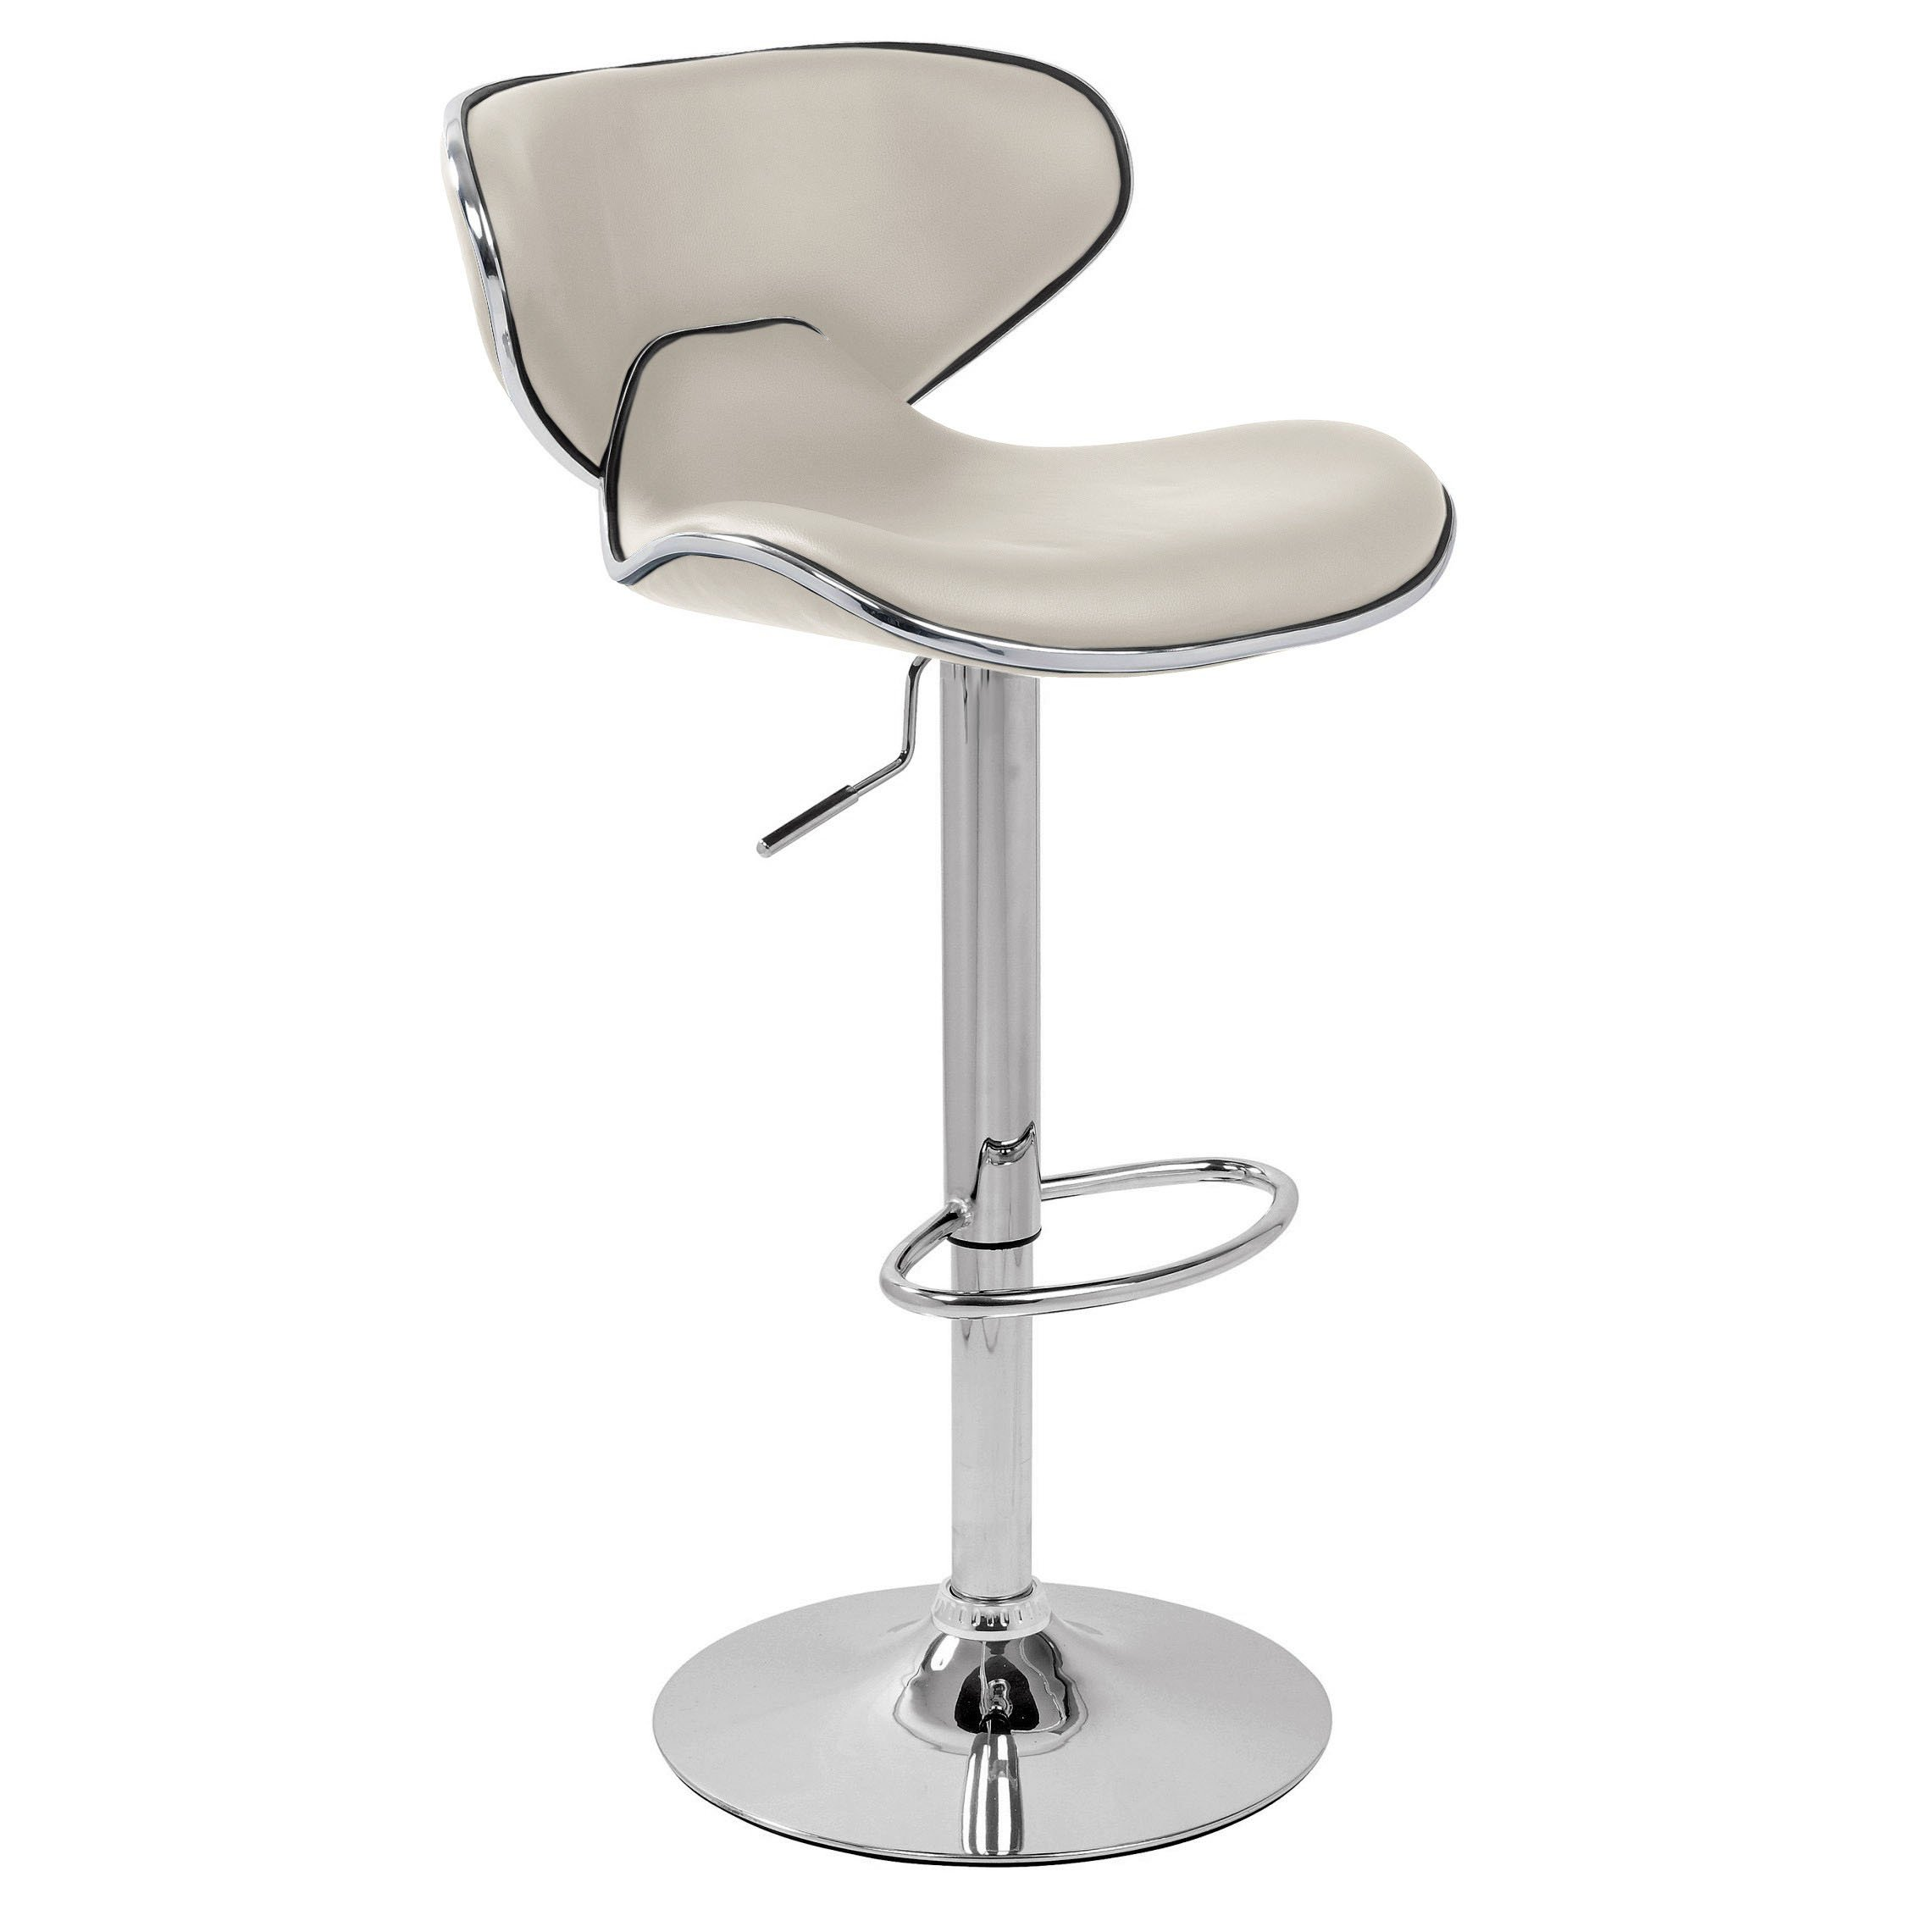 Carcaso Bar Stool - White Product Image